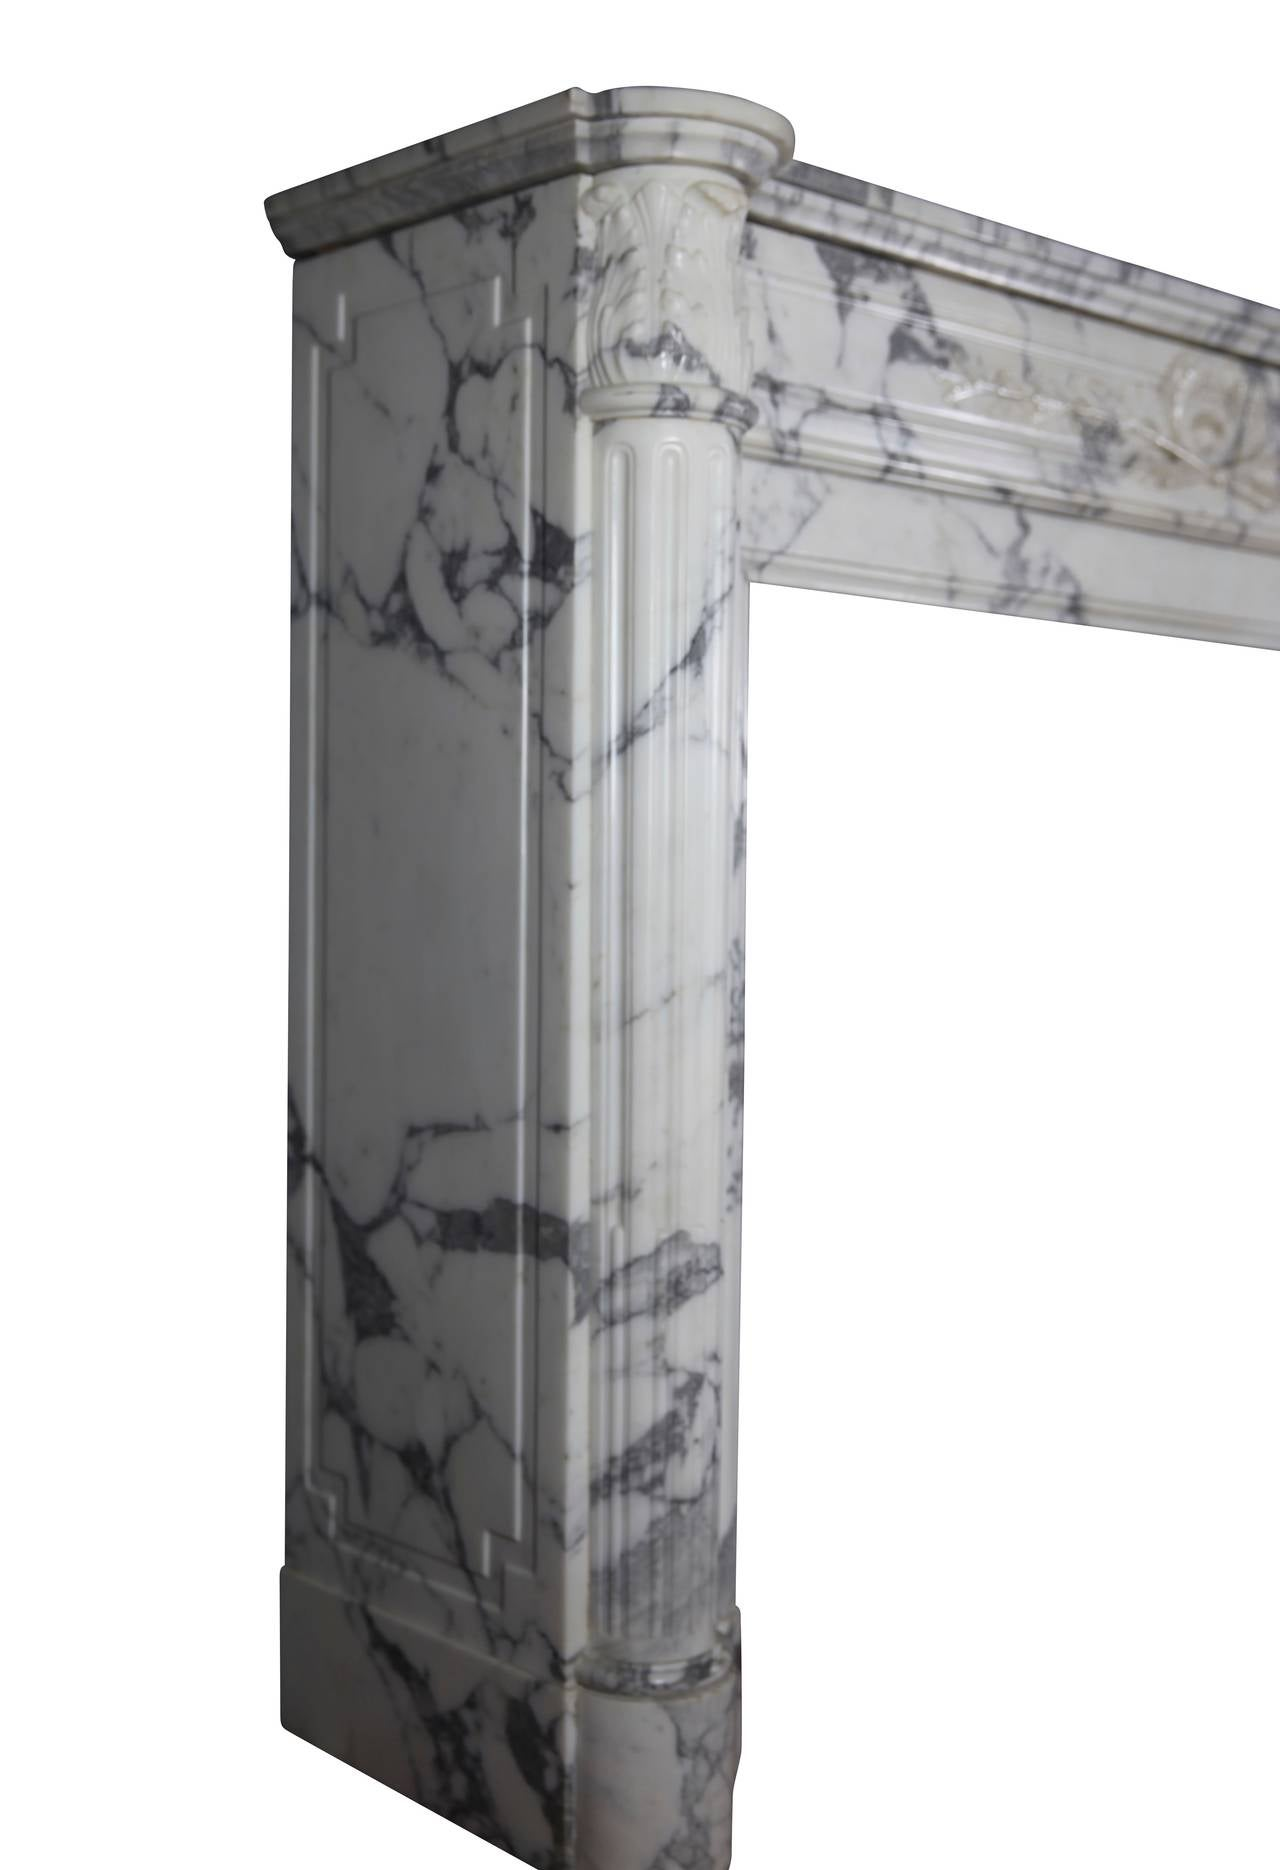 19th Century Carrara White Marble antique fireplace Mantel, Louis XVI Style For Sale 5